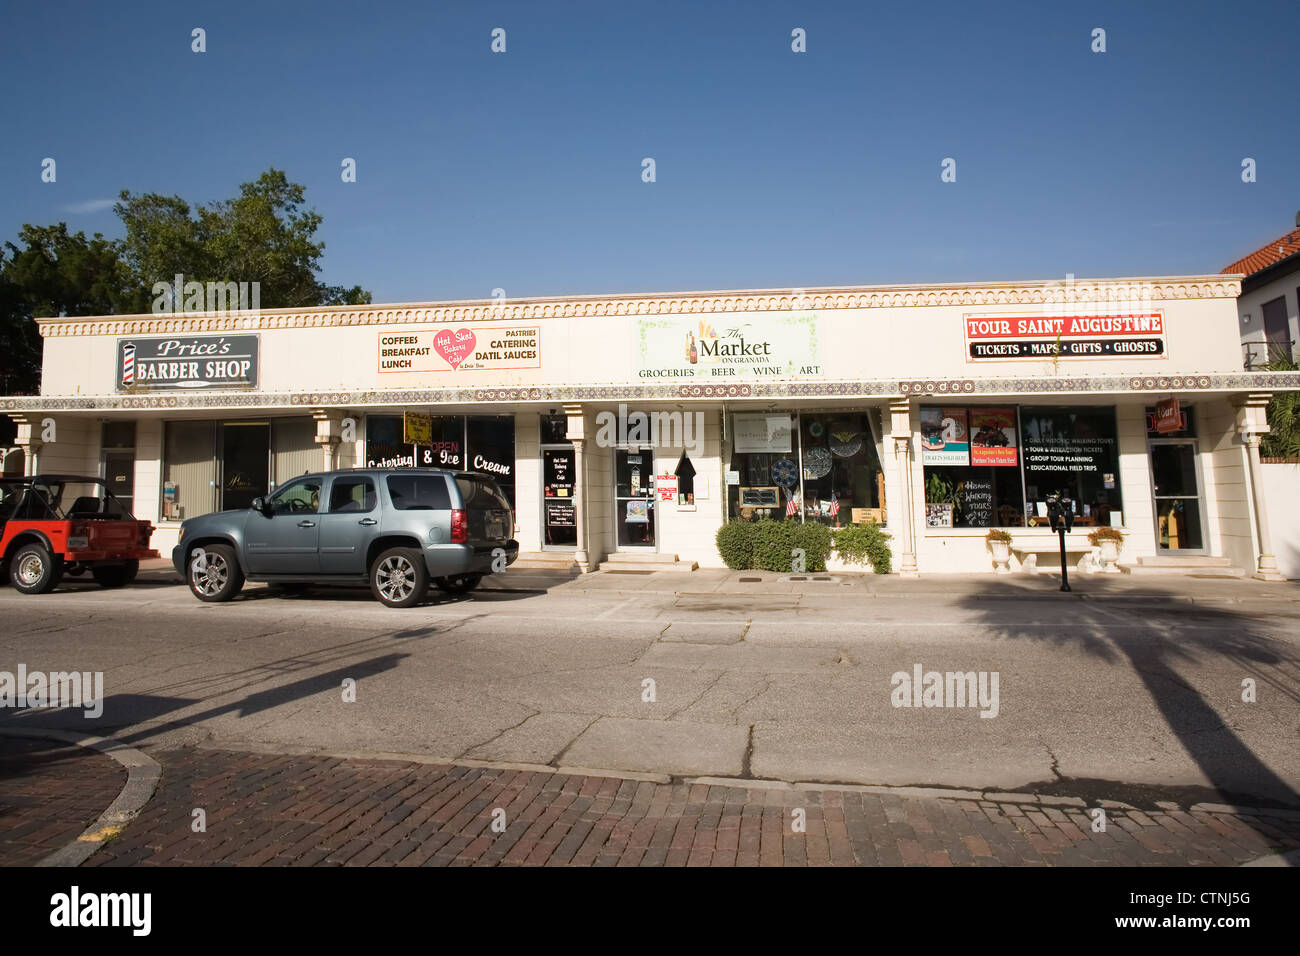 Strip Mall in St. Augustine Florida - Stock Image